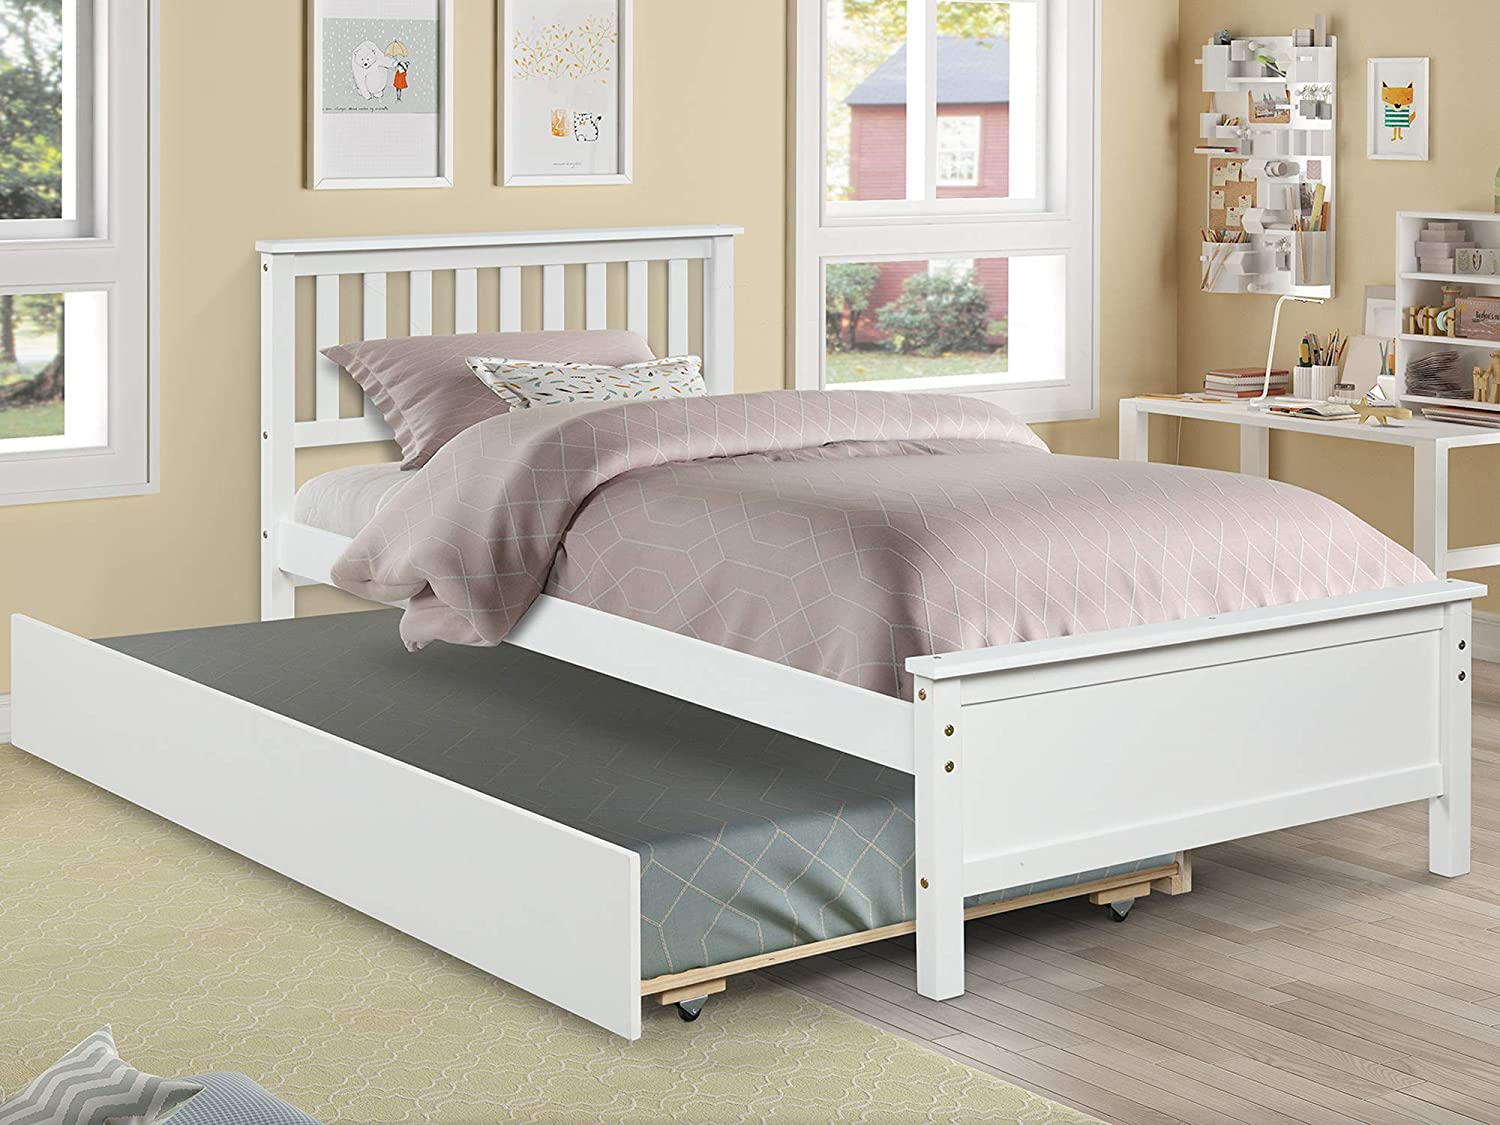 Twin Bed with Trundle Platform Bed Frame Pull-Out Trundle for Kids Teens Adults Sleepovers, Captains Bed for Bedroom Guest Rooms Small Living Space, Wood Slat Support No Box Spring Needed